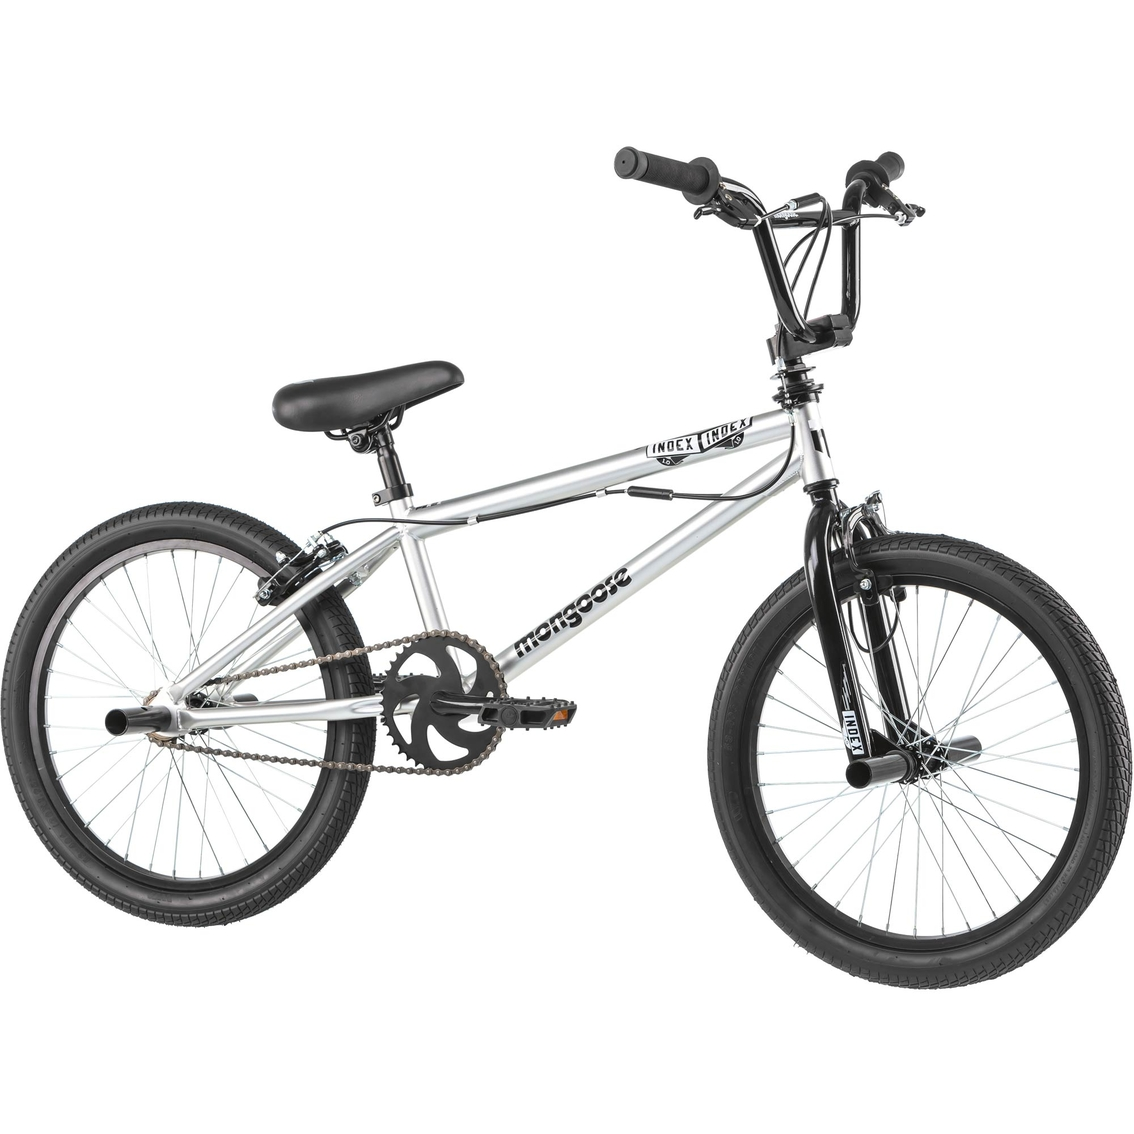 mongoose index 1 20 in boys freestyle bike kids bikes sports Kung Fu Panda Wii mongoose index 1 20 in boys freestyle bike